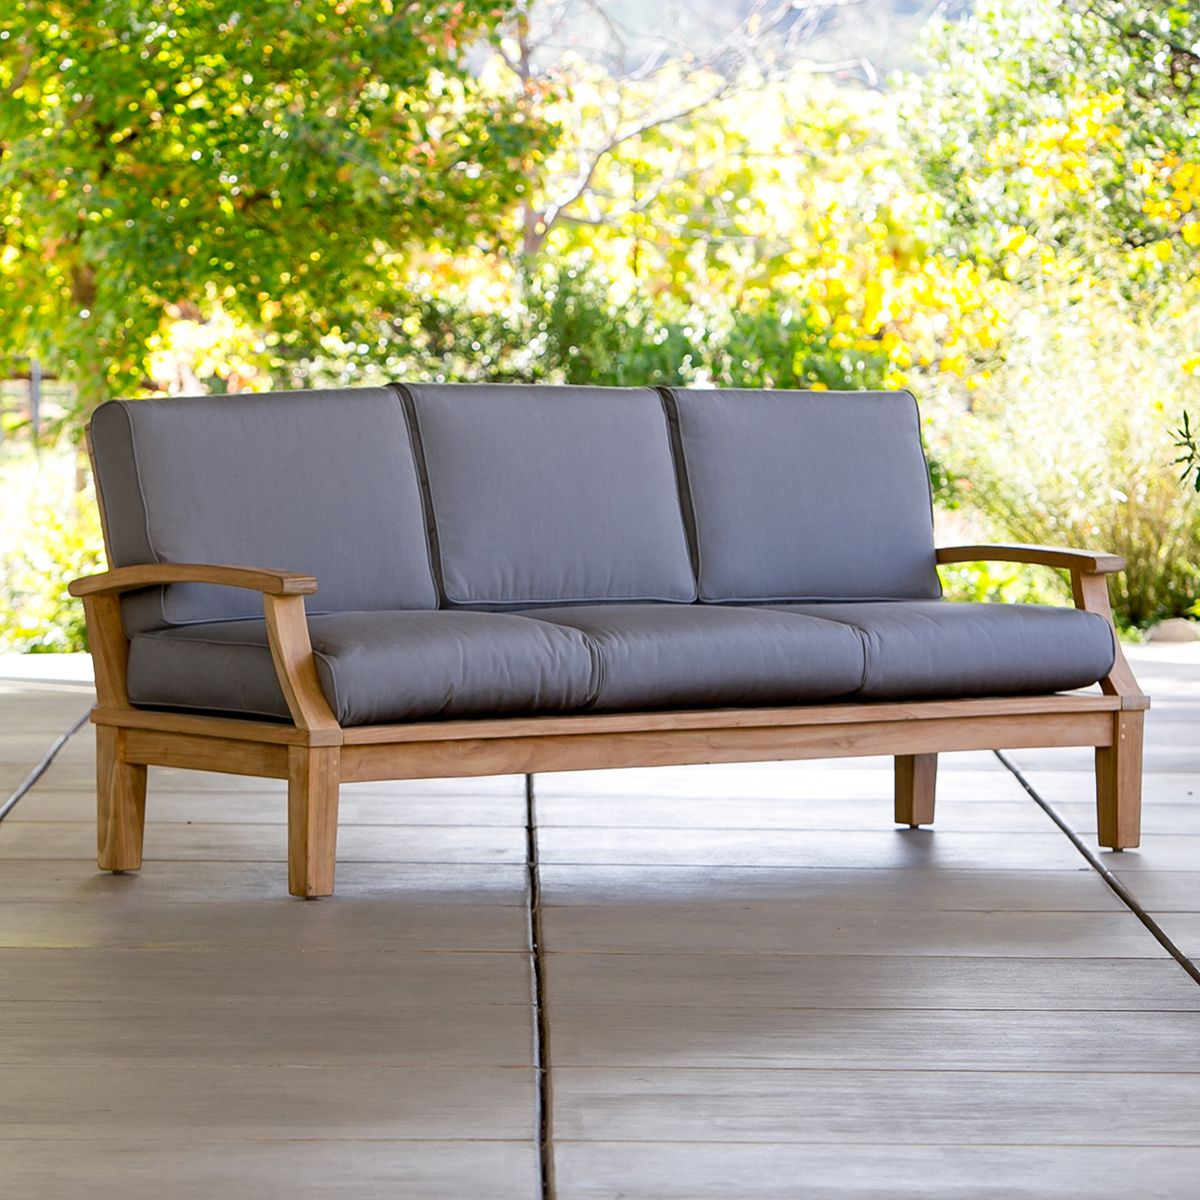 Sofas For Sale! An Outdoor Sofa Turns A Patio Into A Parlor. Modern Sofas  From Our Modern Outdoor Furniture Collection Include Sunbrella Outdoor  Cushions.